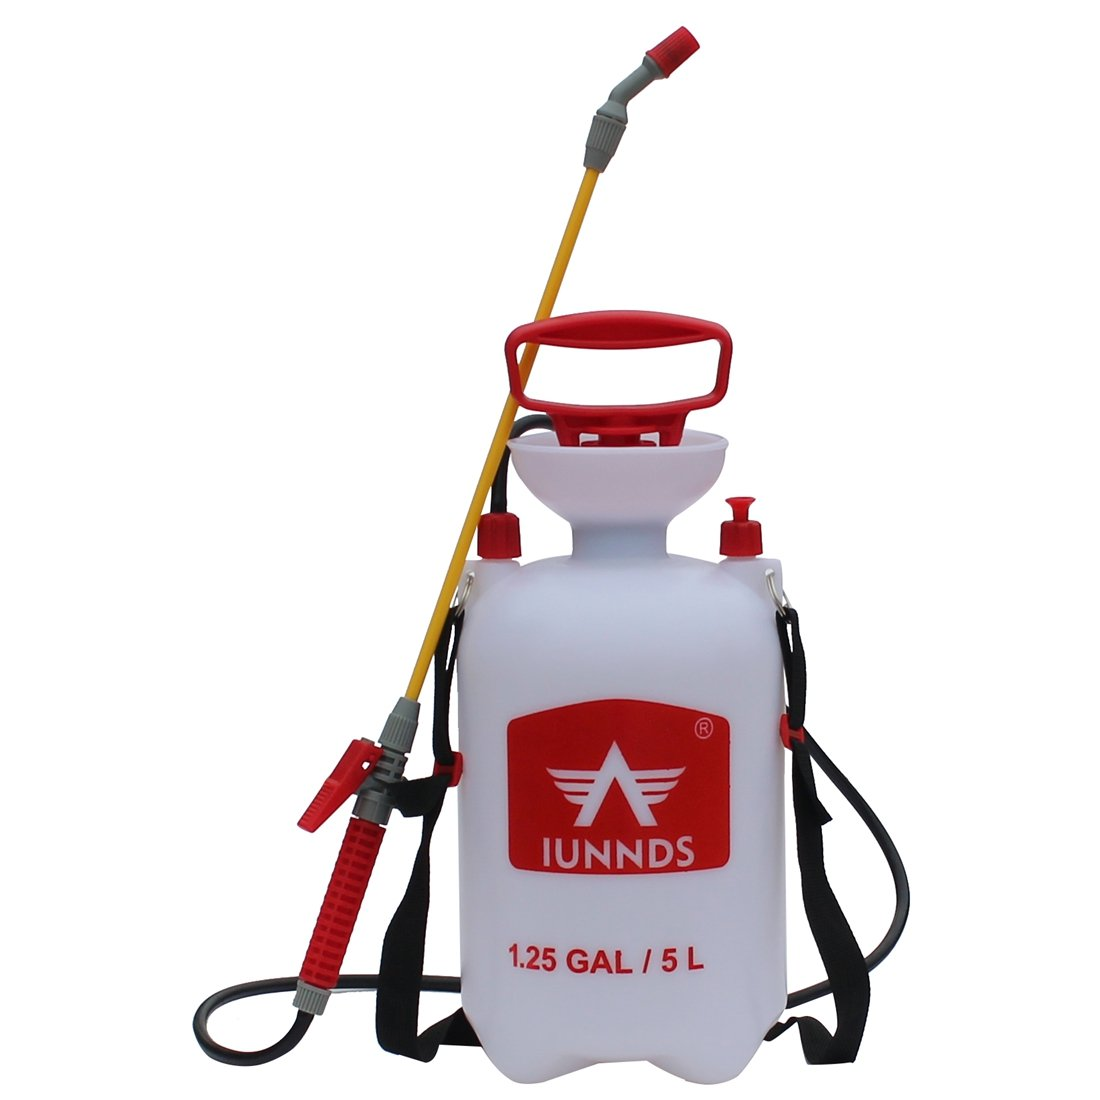 Sports God Lawn and Garden Pump Pressure Sprayer for Fertilizer,  Herbicides, Pesticides, Mild Cleaning Solutions and Bleach (1 3 Gallon (5L))